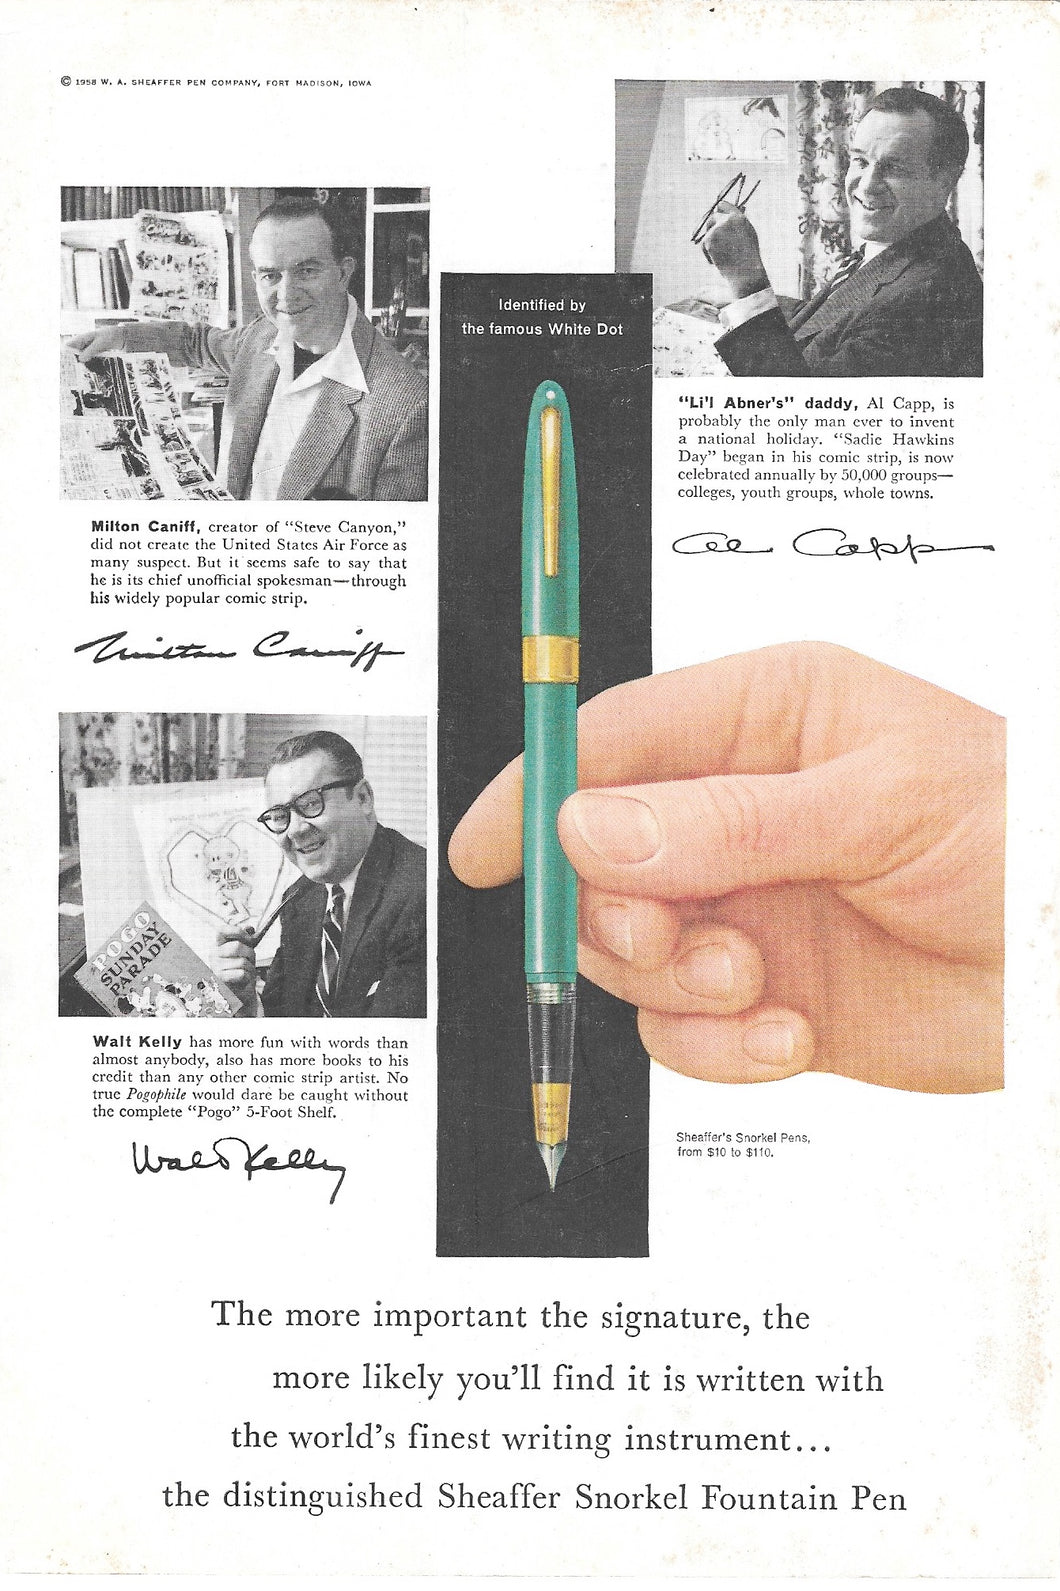 Sheaffer's Snorkel, White Dot, Green, Copr. 1958